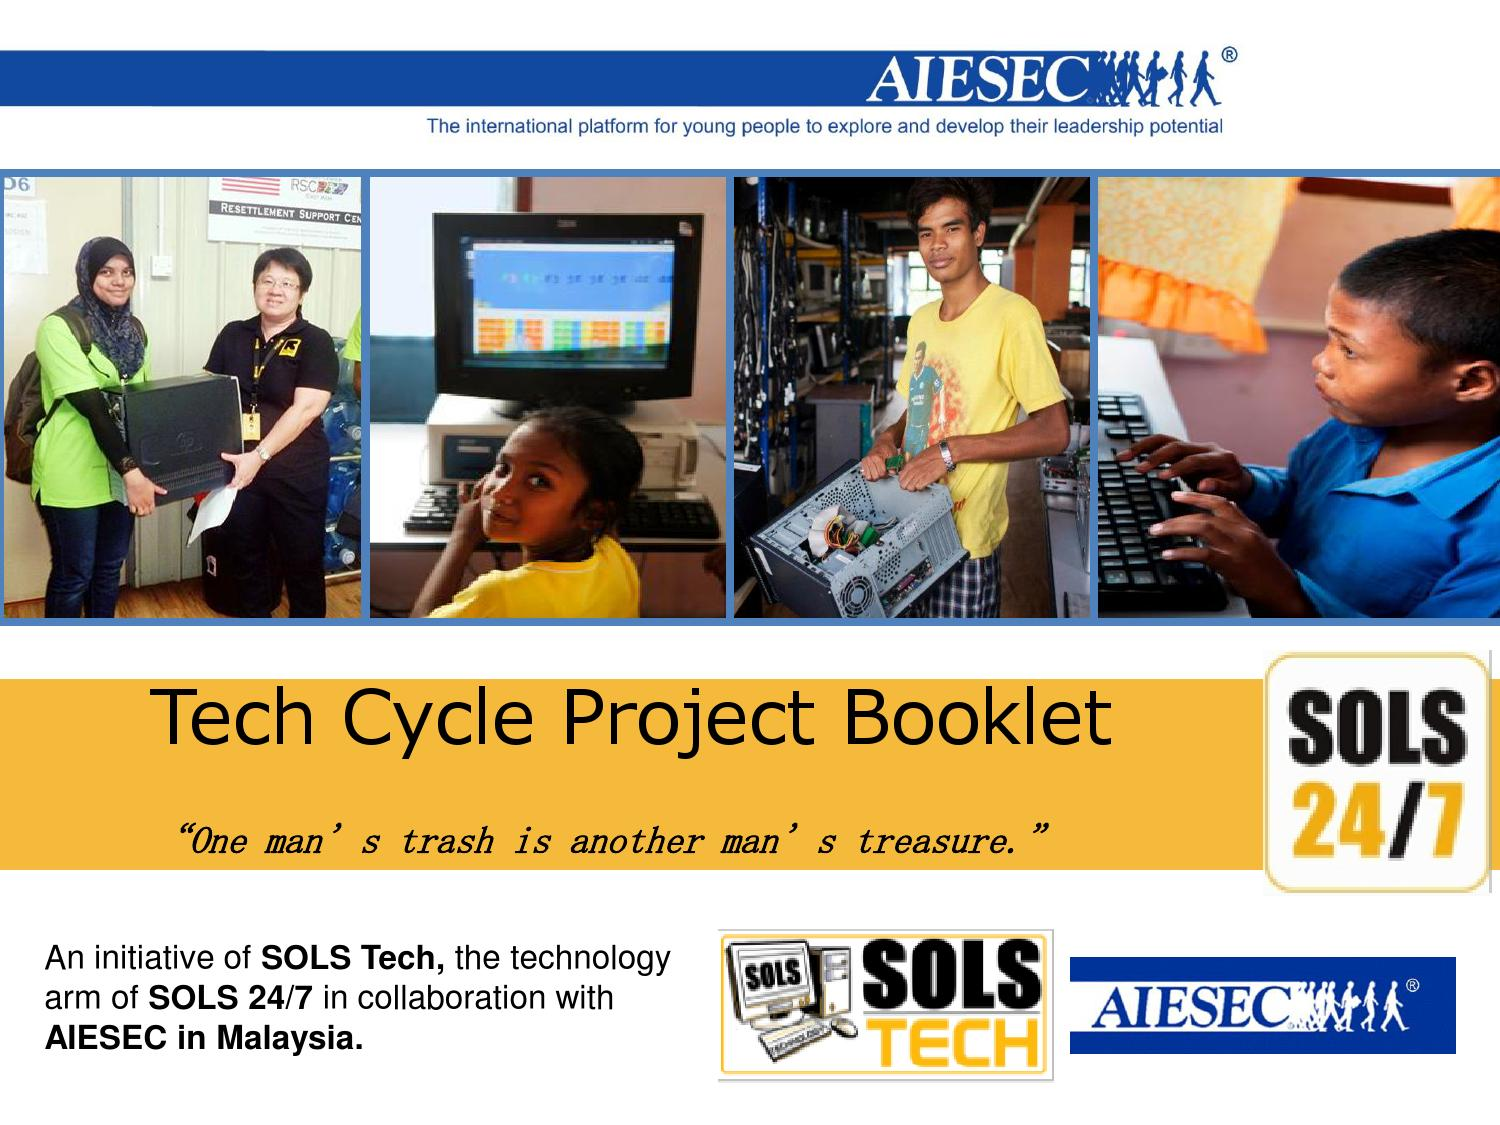 Techcycle MC Project Booklet